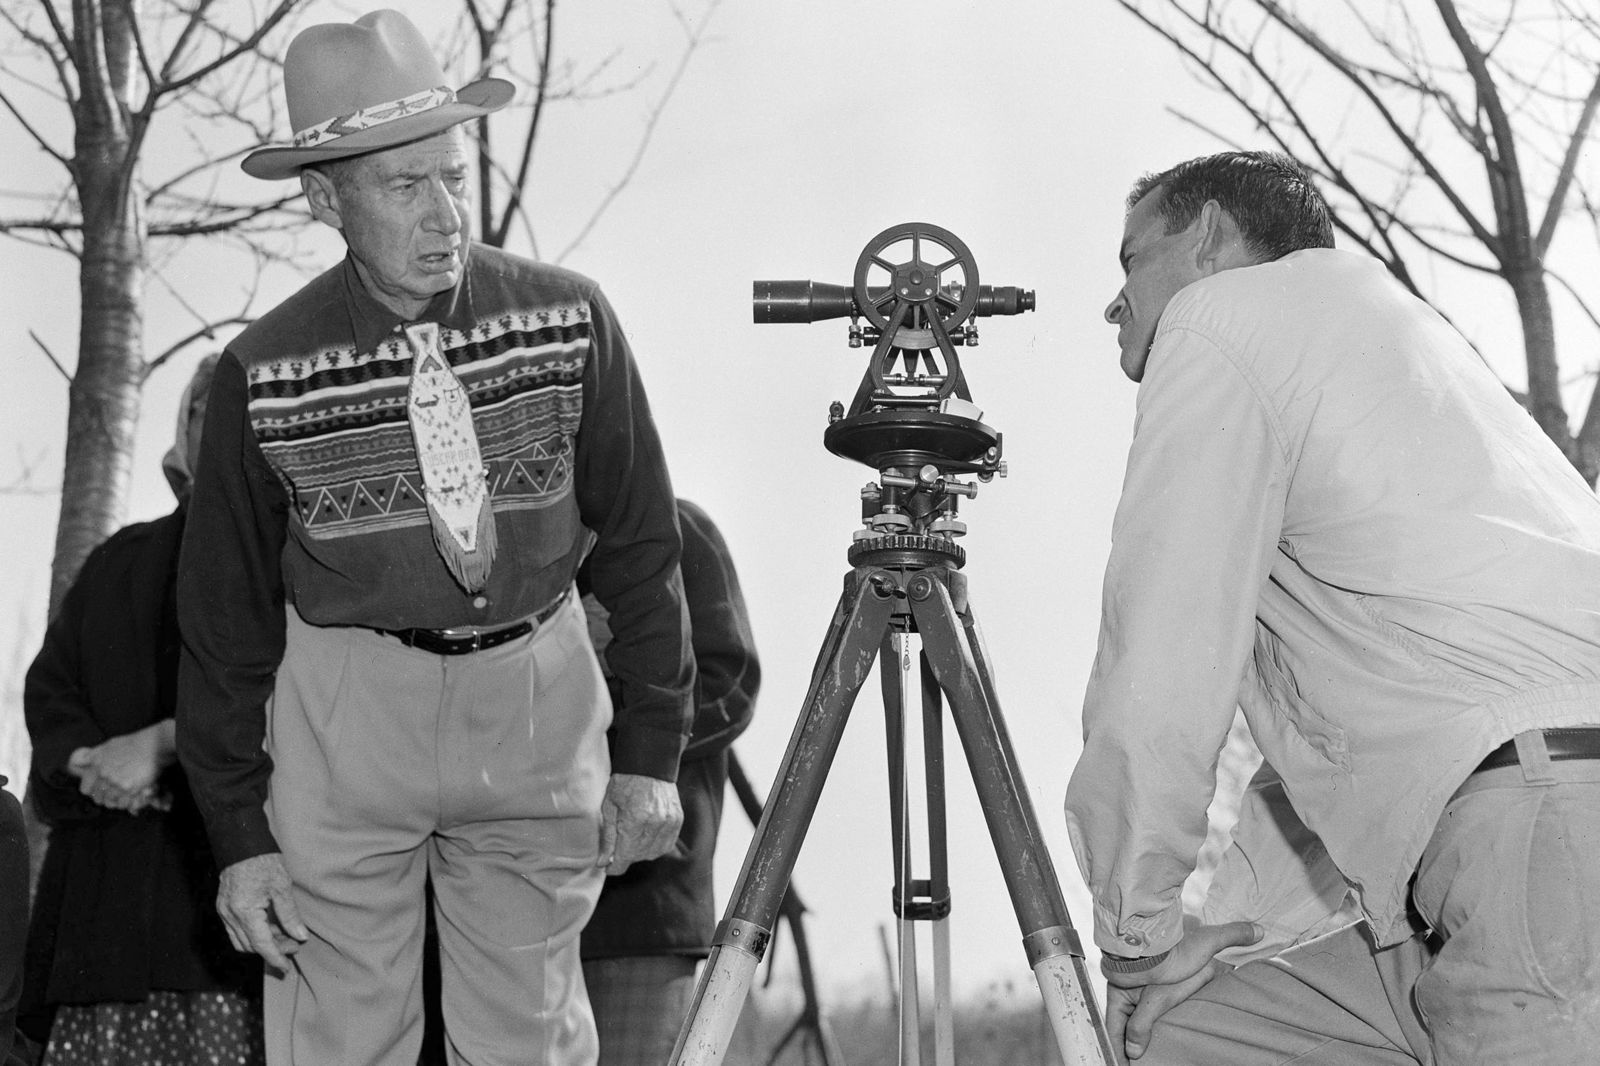 FILE - In this April 18, 1958 file photo, Philip N. Brooks, right, a New York State surveyor, takes a look through his transit on the Tuscarora Indian Reservation near Niagara Falls, N.Y., while Tuscarora Chief Elton Black Cloud Greene watches. The tribe is resisting state seizure of their land for a power project. In 1959, the U.S. government started the switch from the U.S. survey foot to the international foot, and it will finish the job in 2022. (AP Photo)